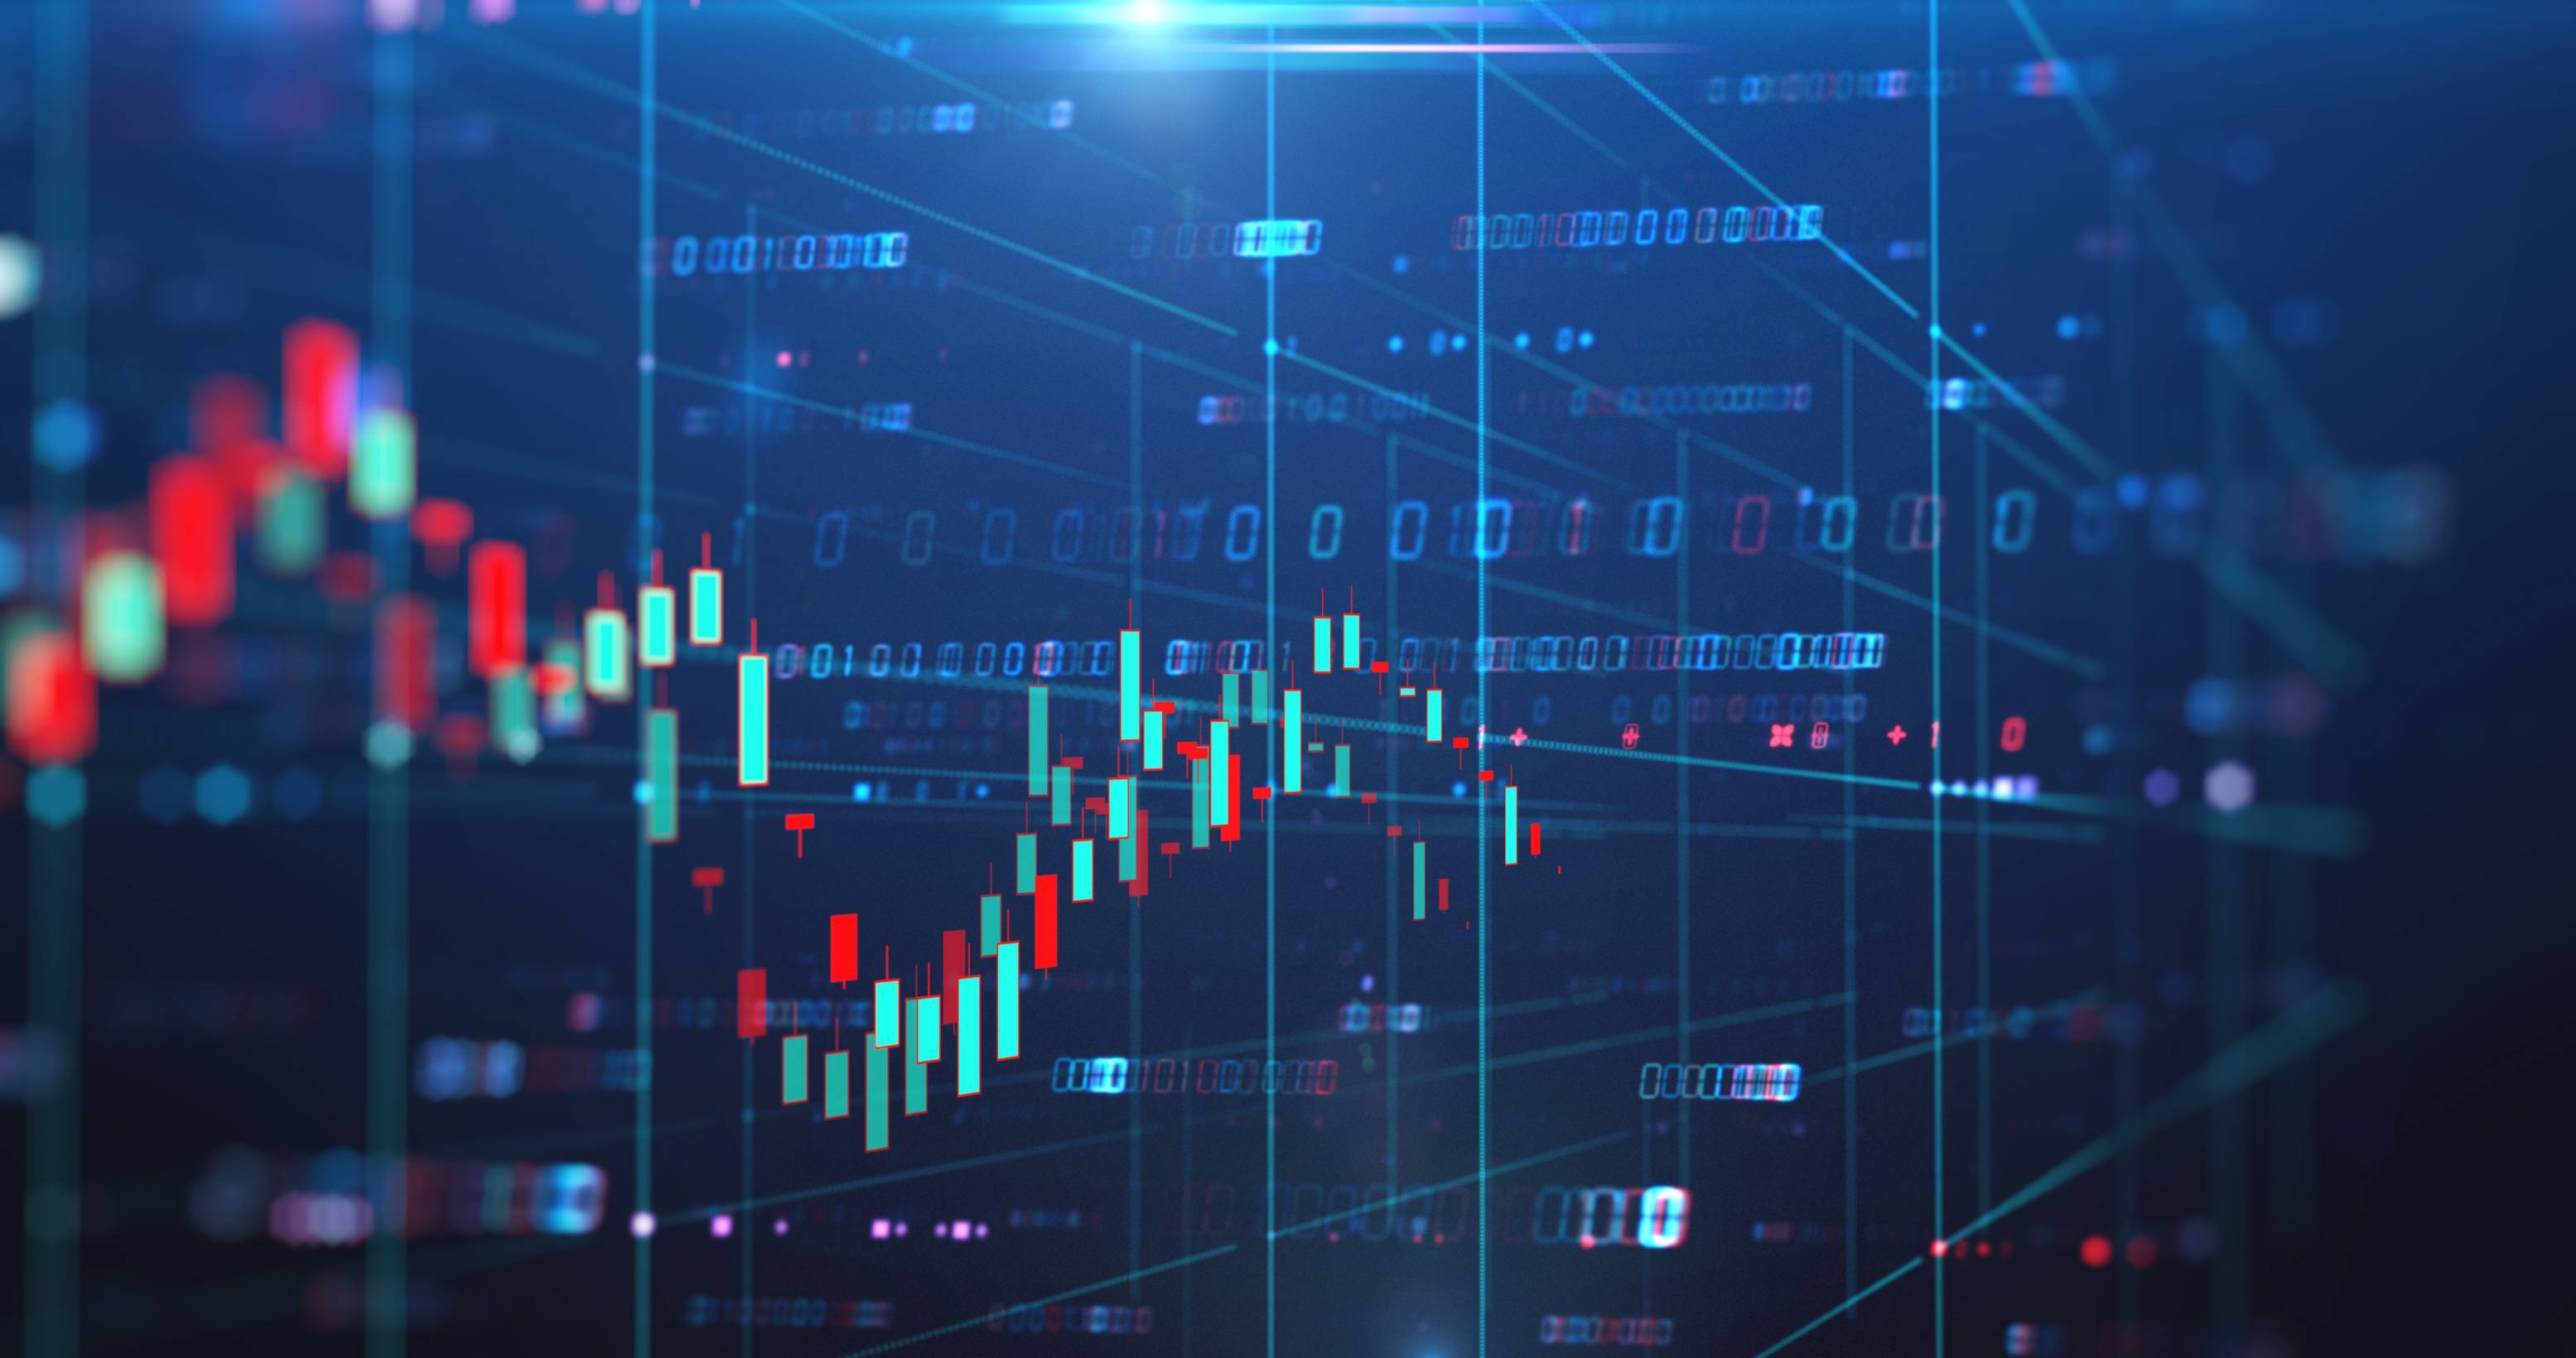 XENE stock receives a $50 price target from Wallstreet analyst